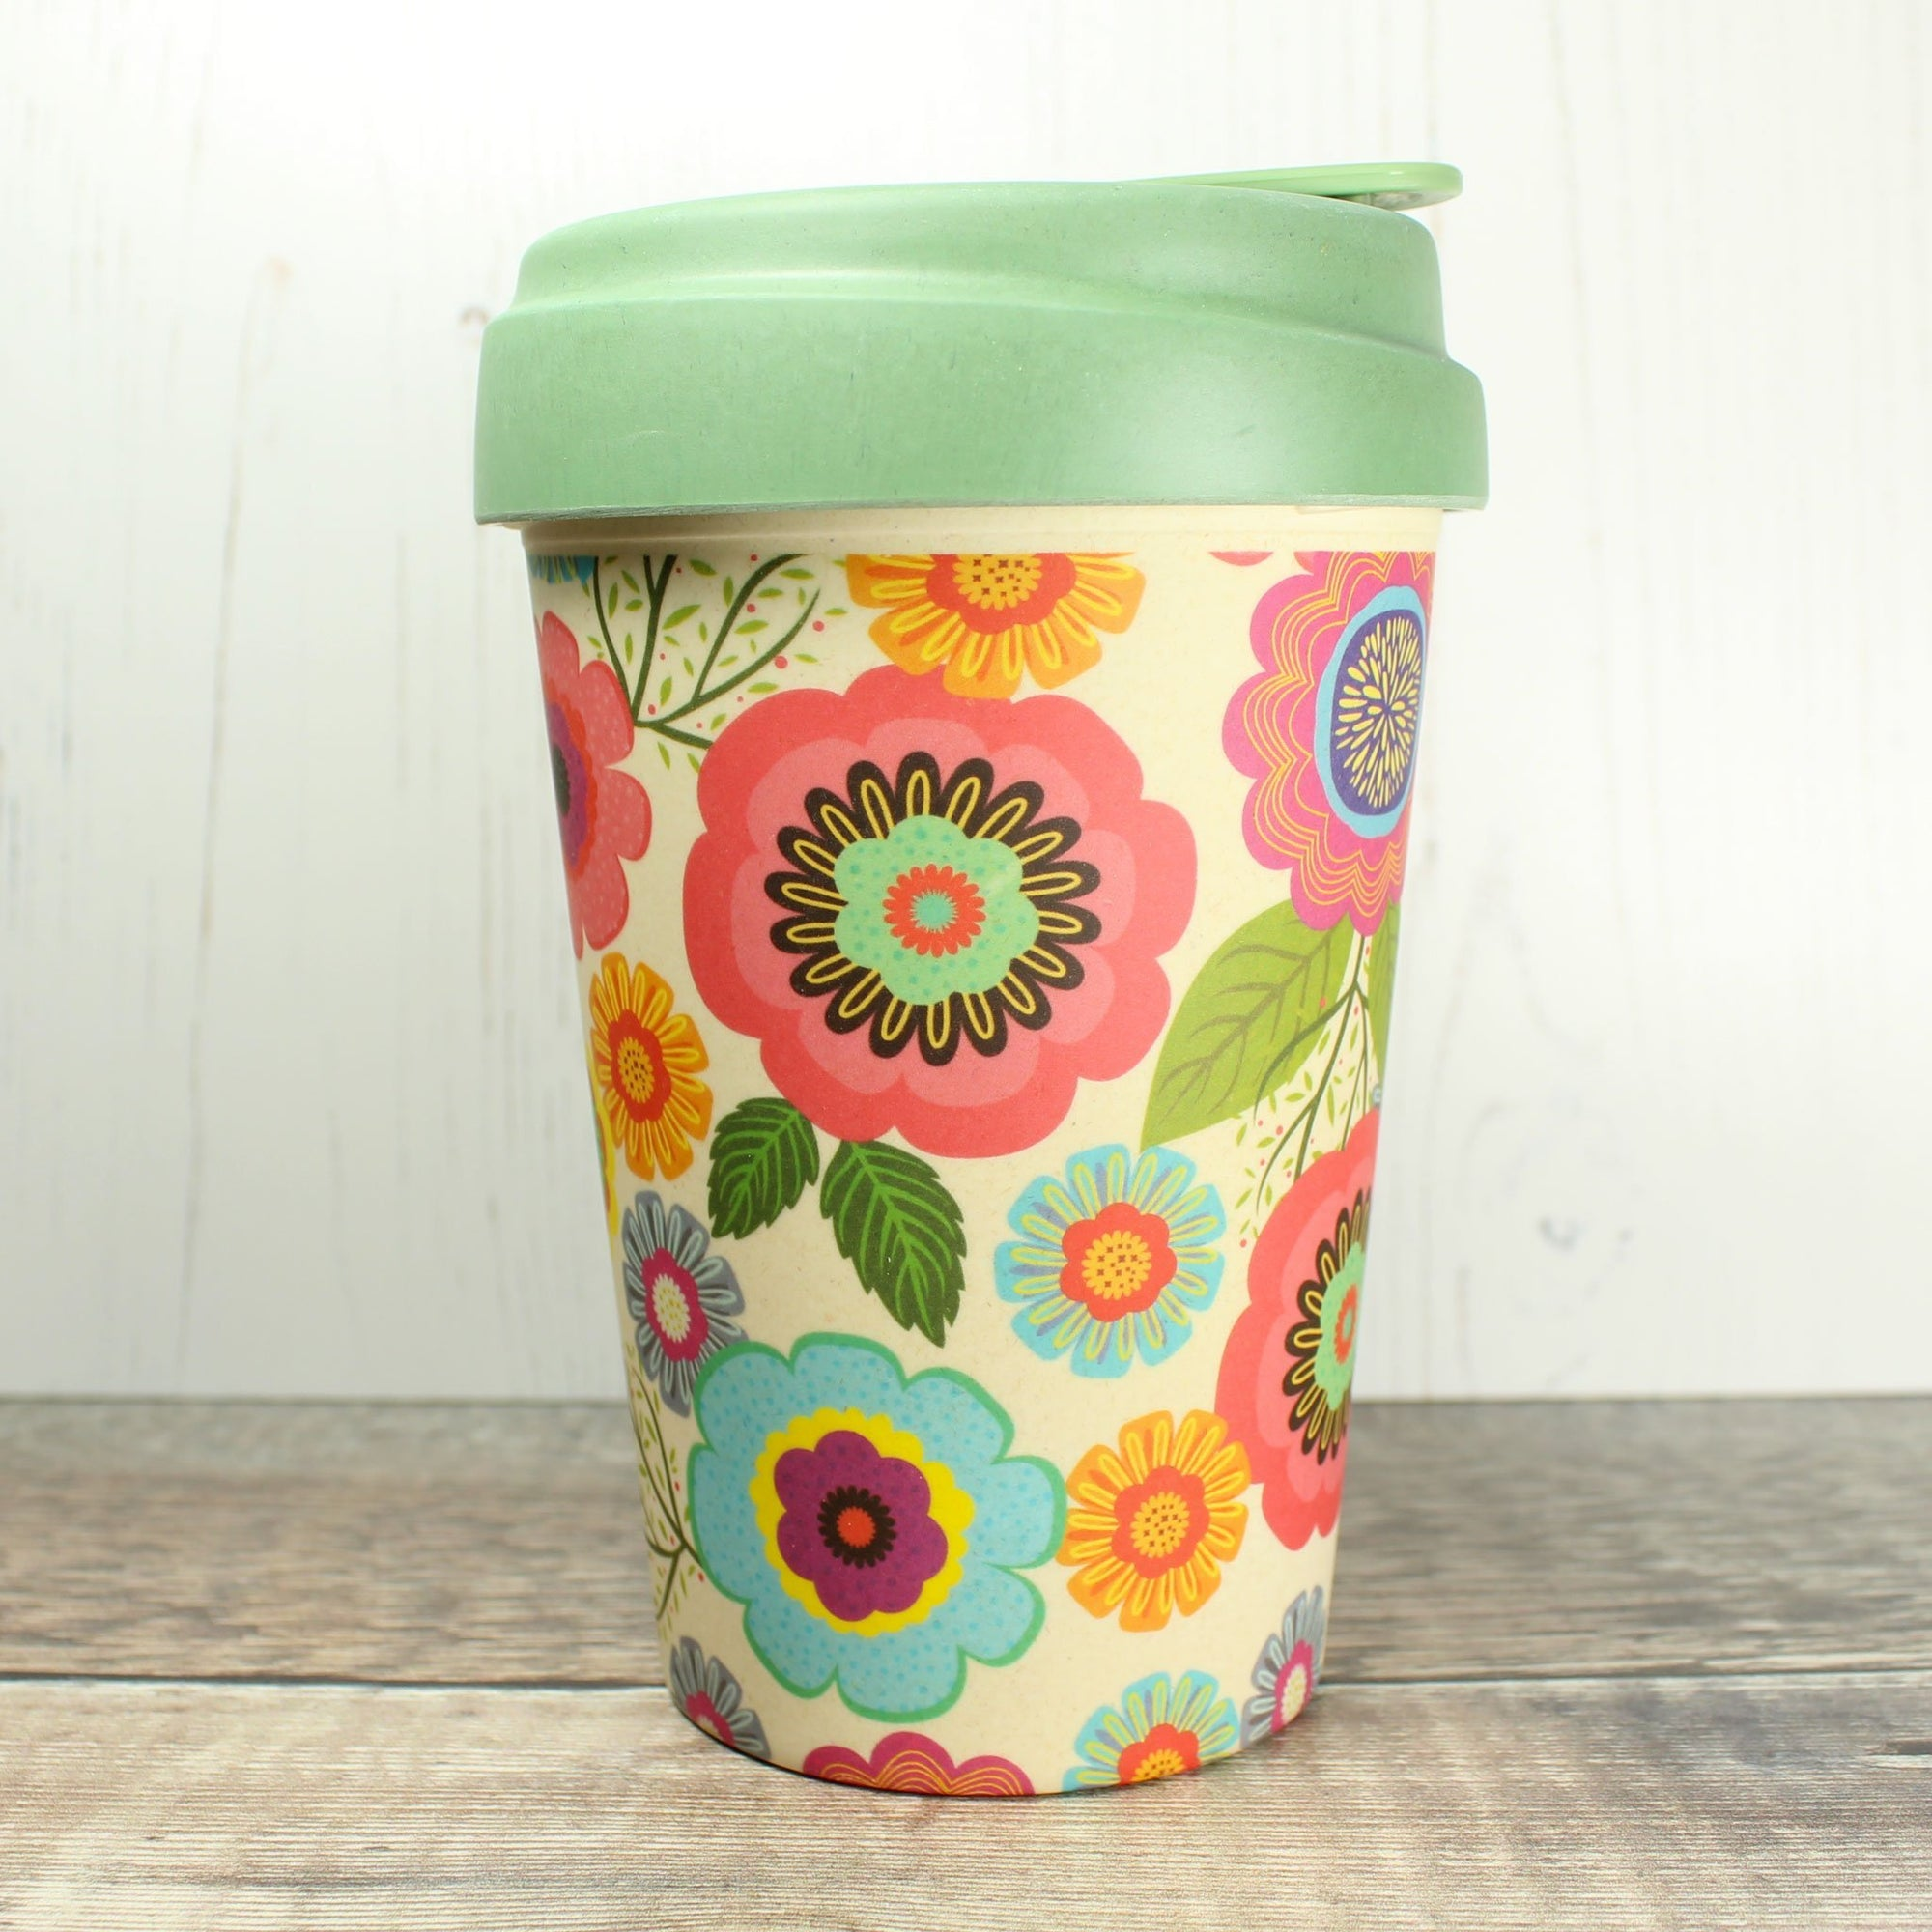 Bamboo Cup - Flower Power | Bamboo Cup - The Naughty Shrew